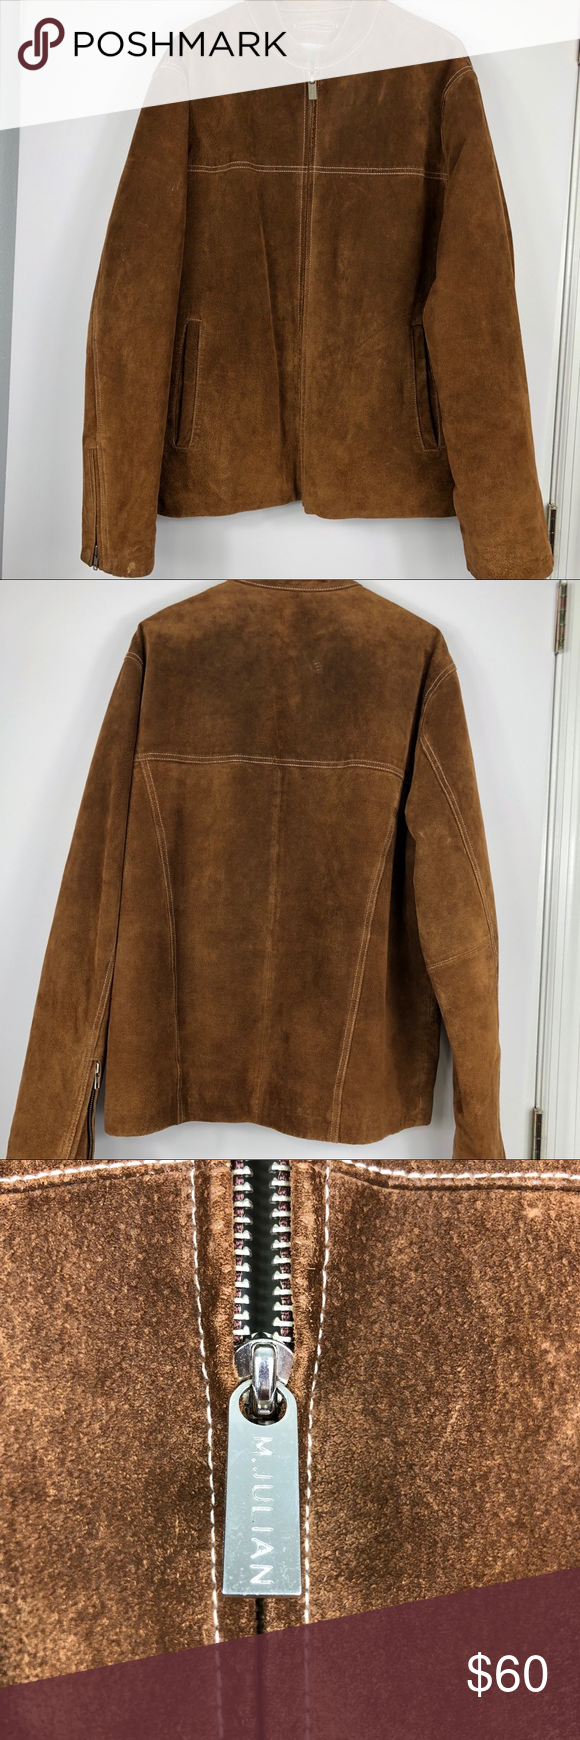 Wilsons Leather Men's Suede Jacket Wilsons Leather M